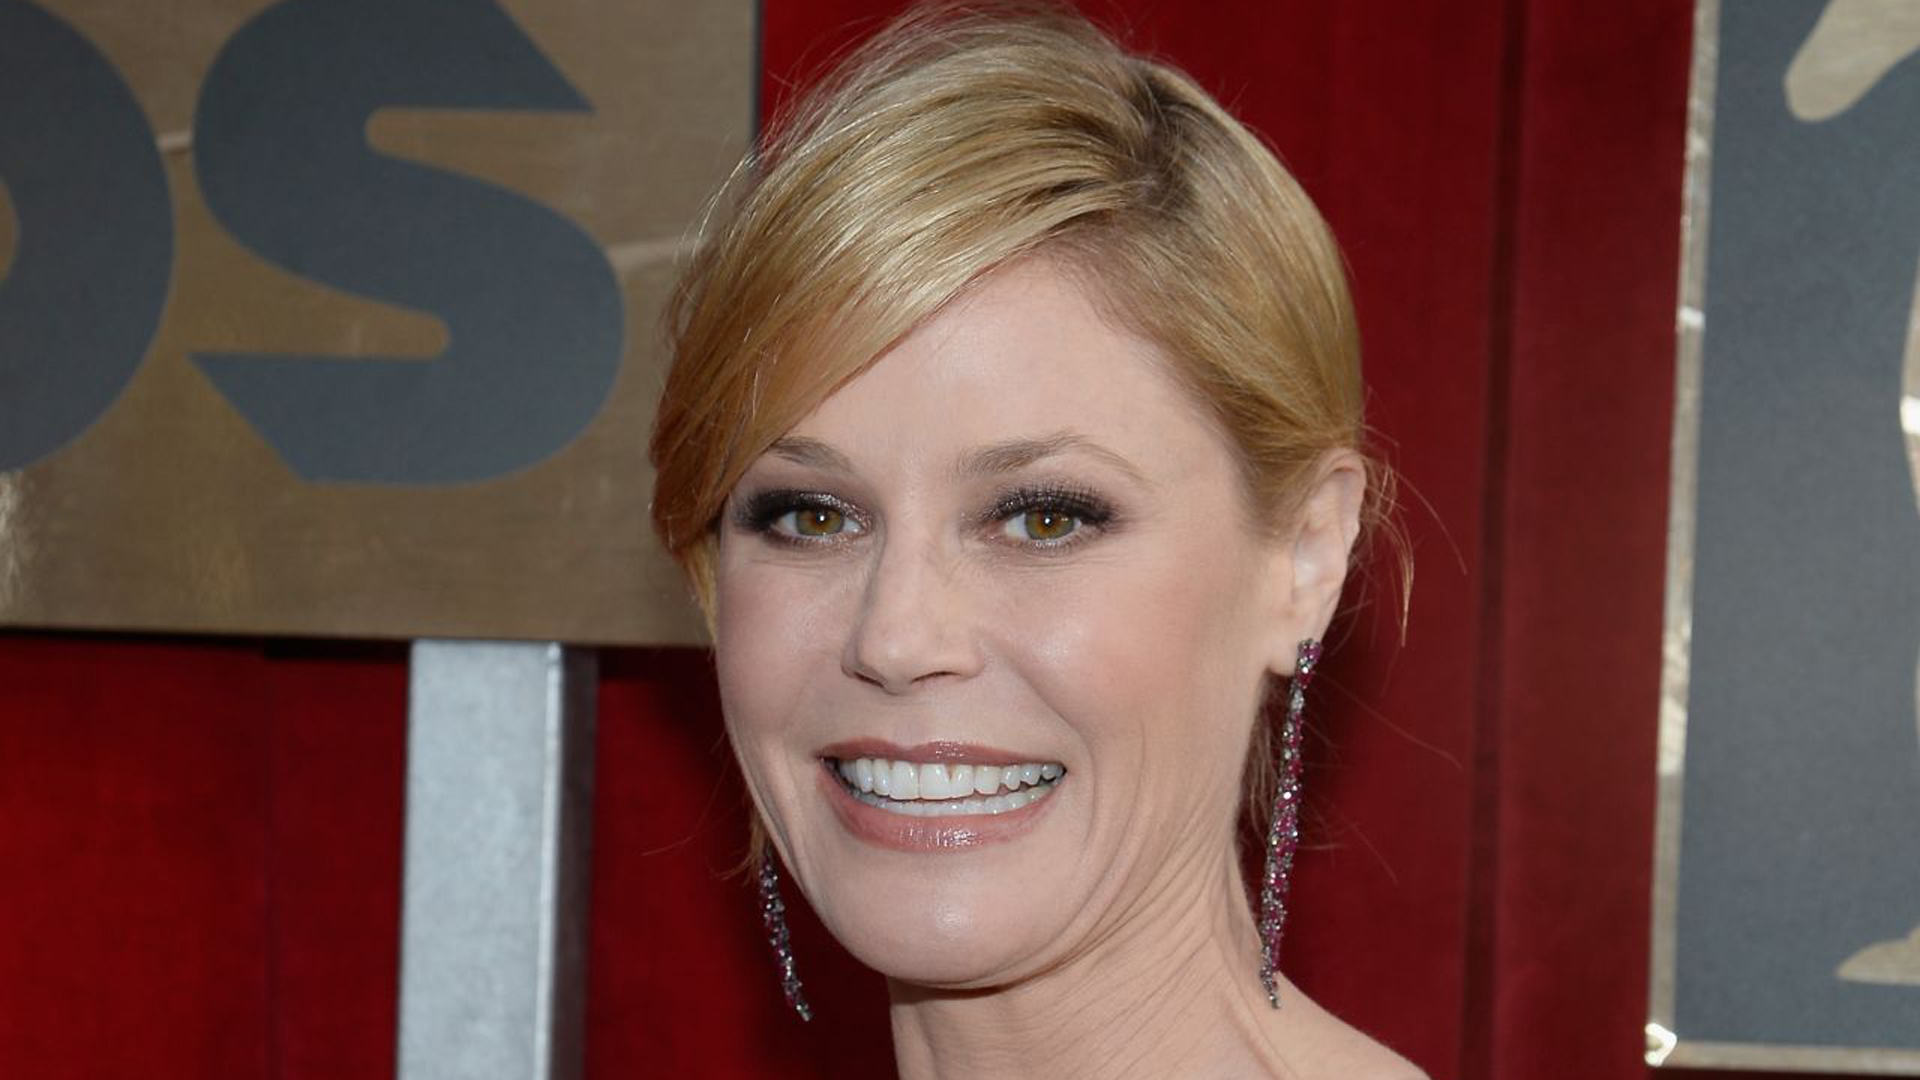 Julie Bowen Wallpapers Images Photos Pictures Backgrounds-9624